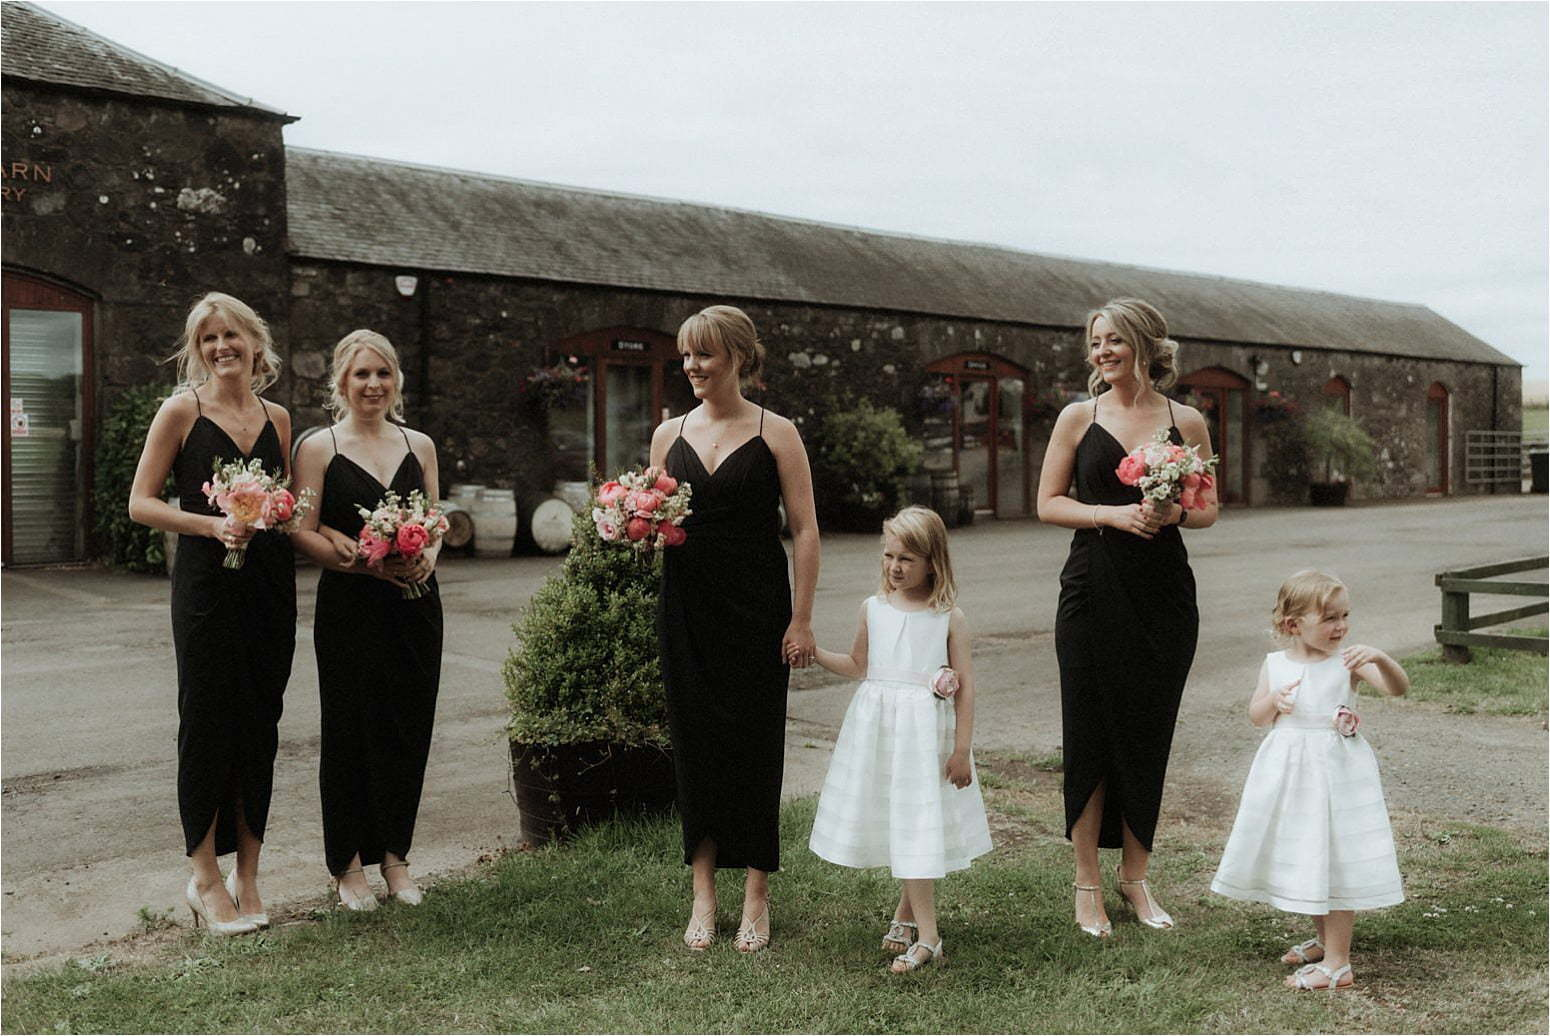 scottish wedding at bachilton barn bridesmaids wait